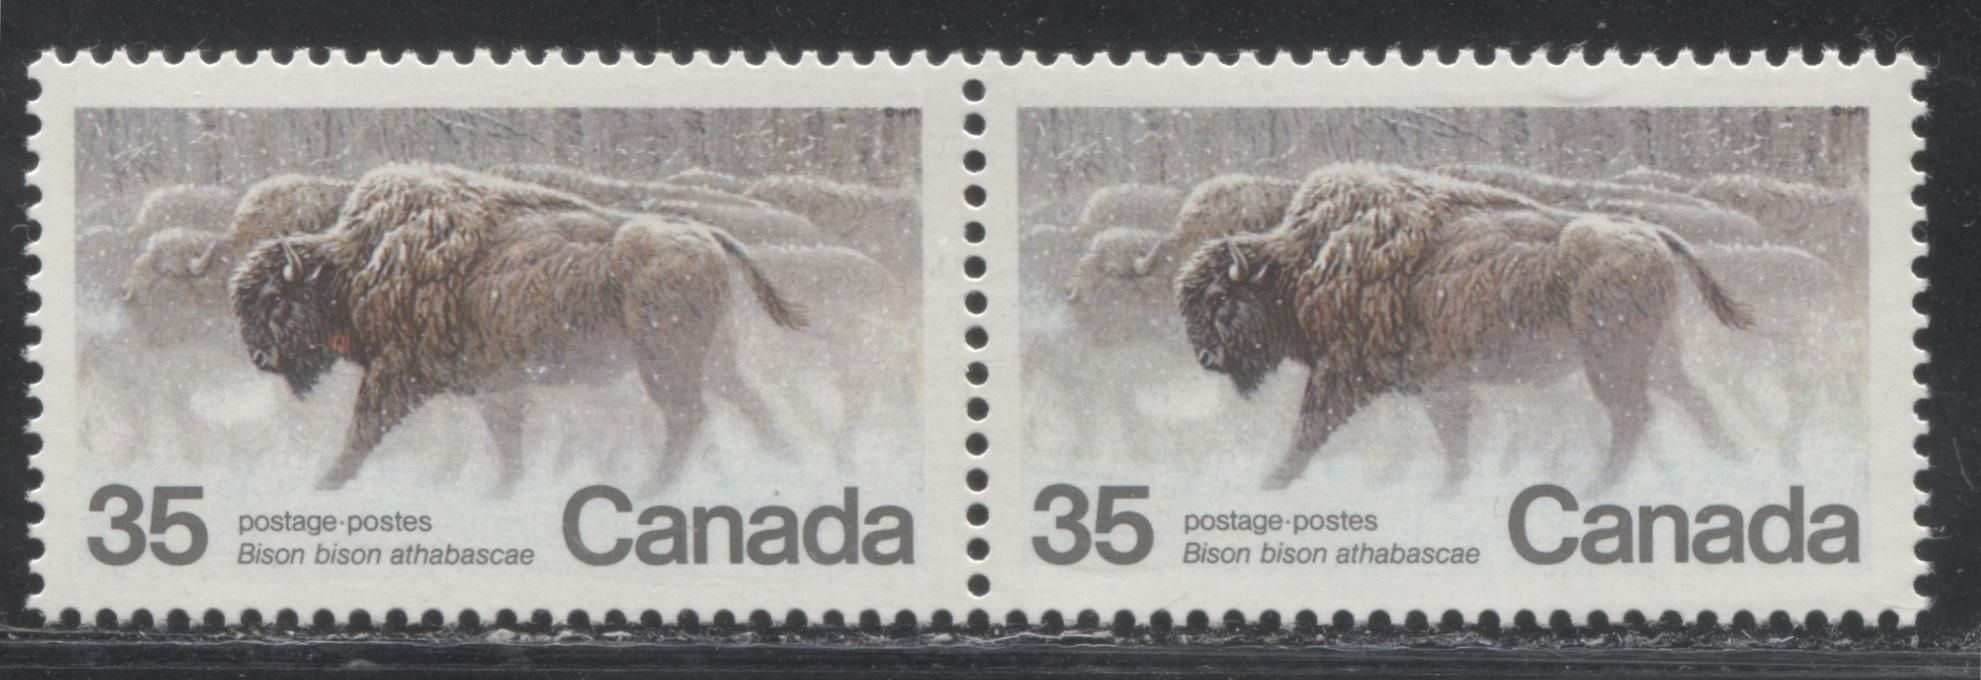 "Canada #884var 35c Multicoloured Wood Bison, 1981 Endangered Wildlife Issue, A VFNH Pair Showing the ""Neck Wound"" Variety"